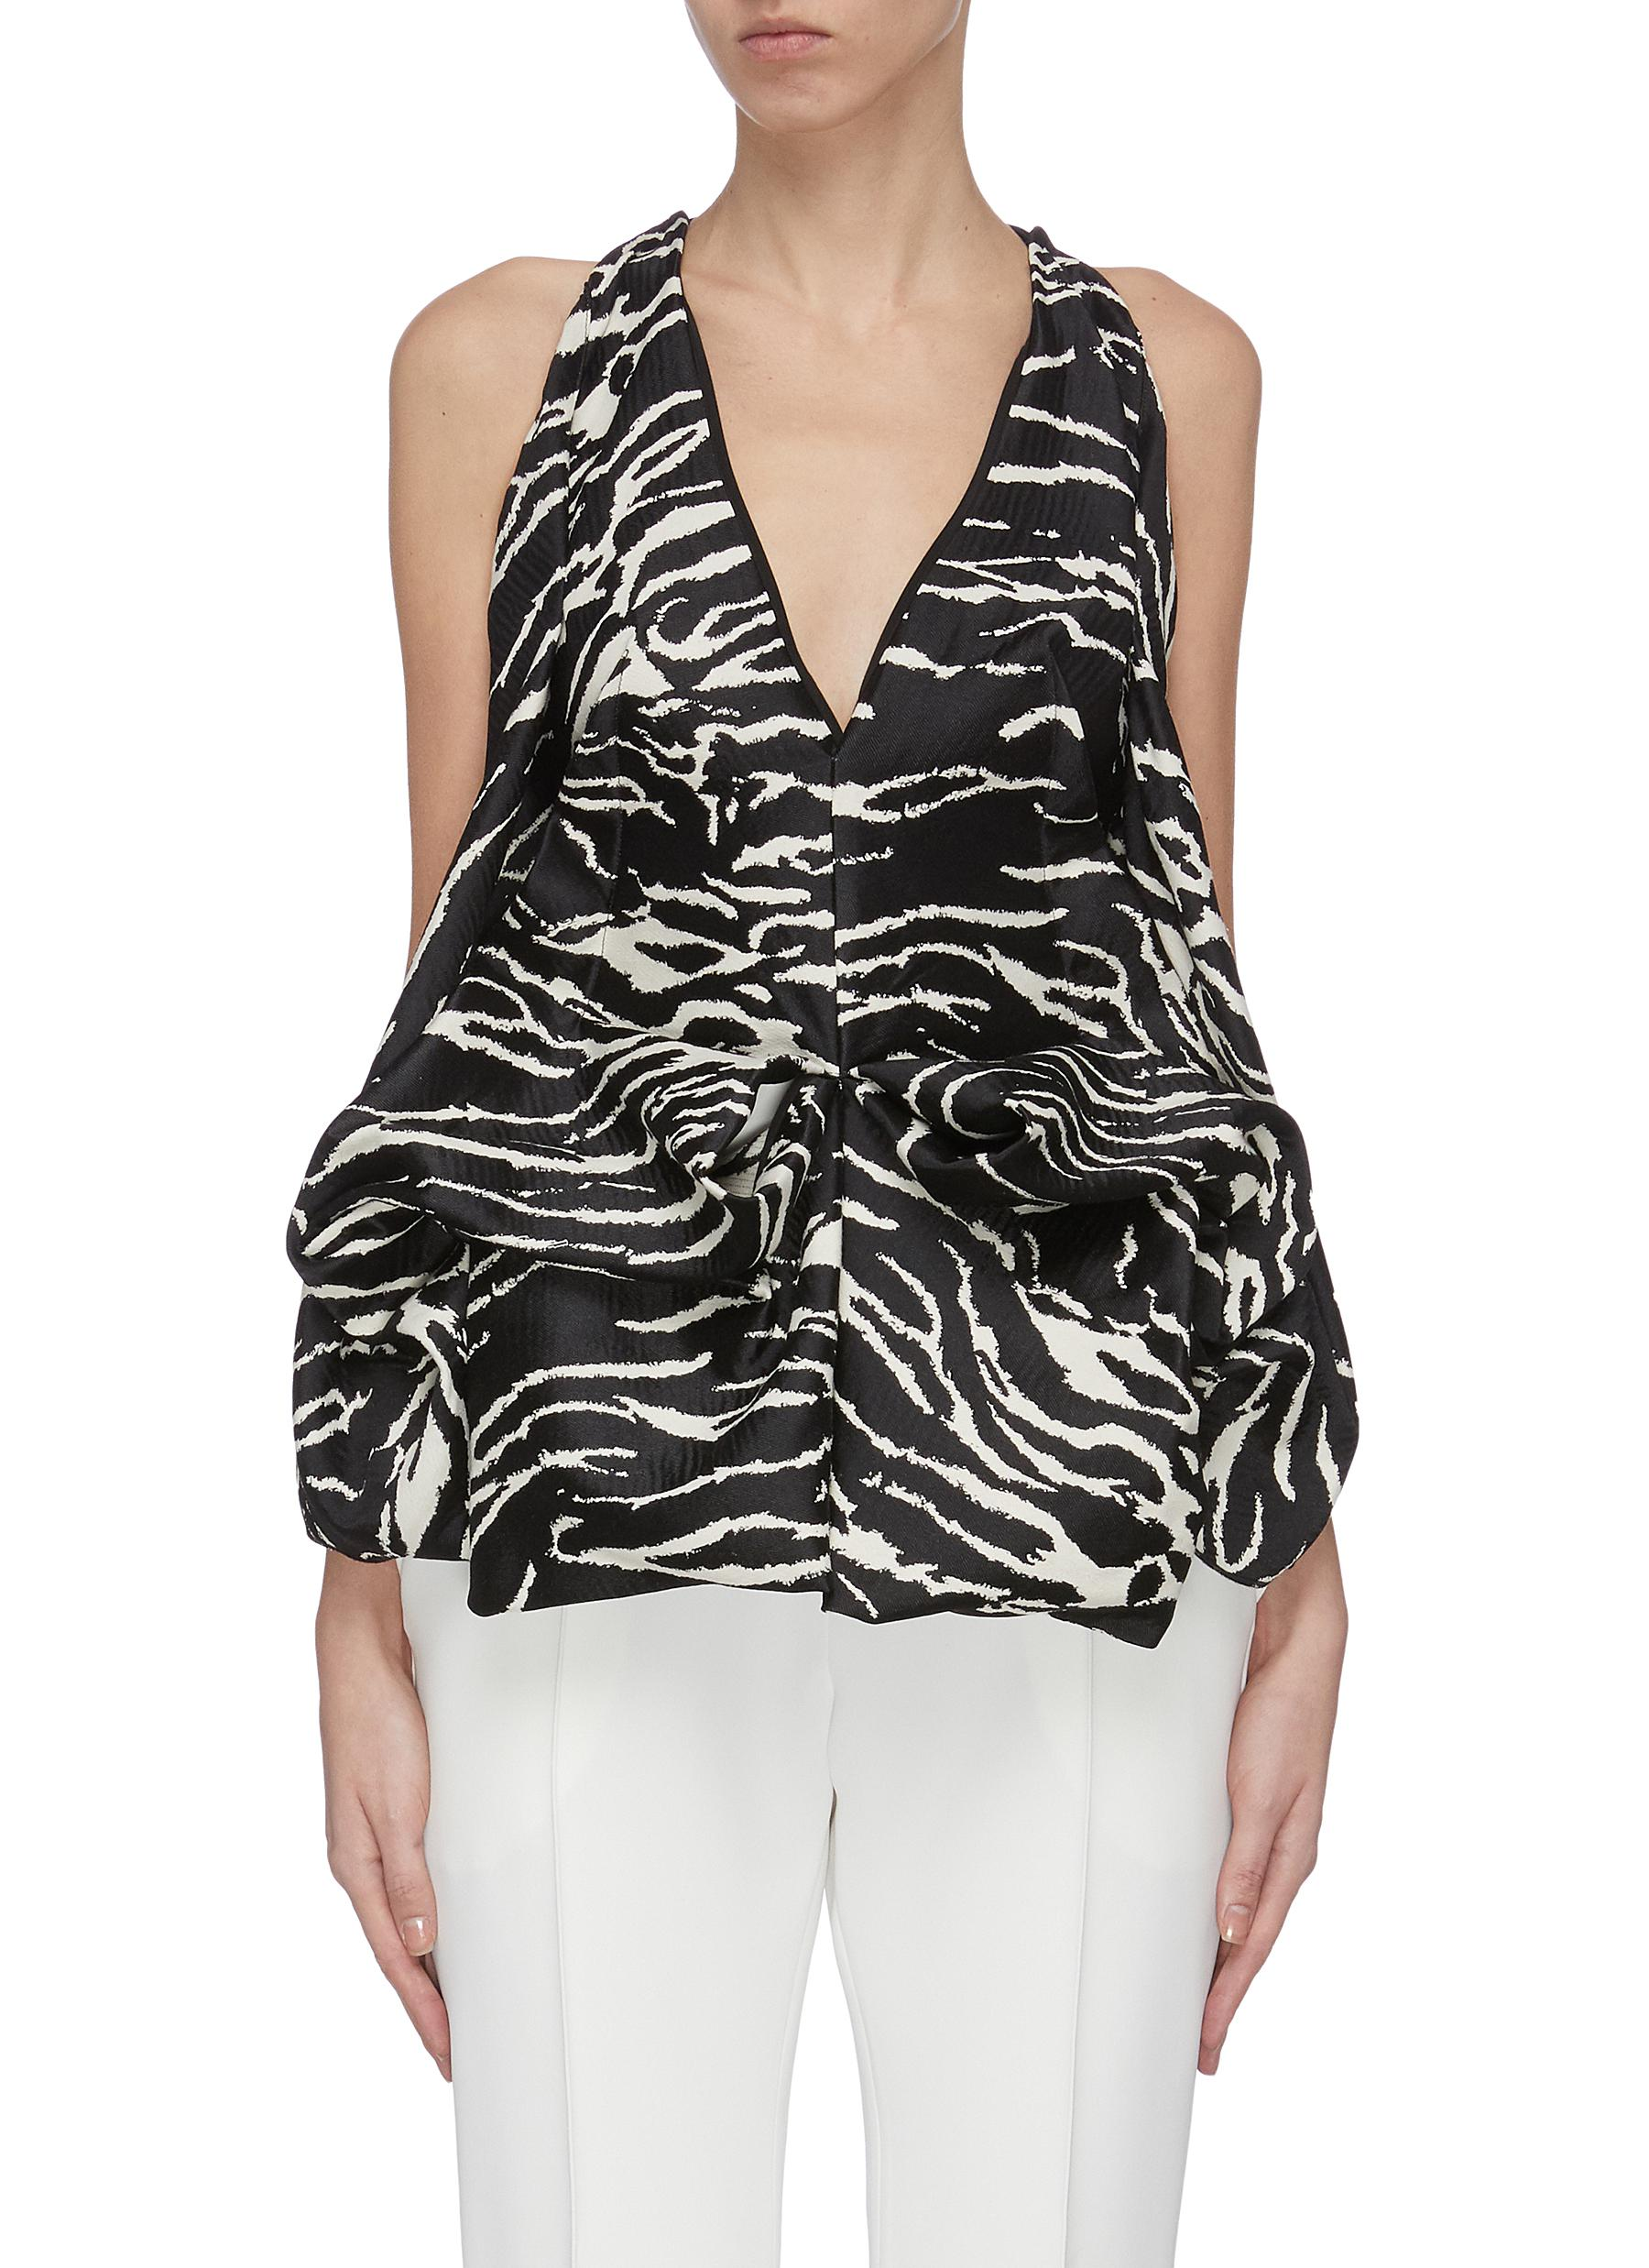 Buy Maticevski Tops 'Clade' animal print bodice top